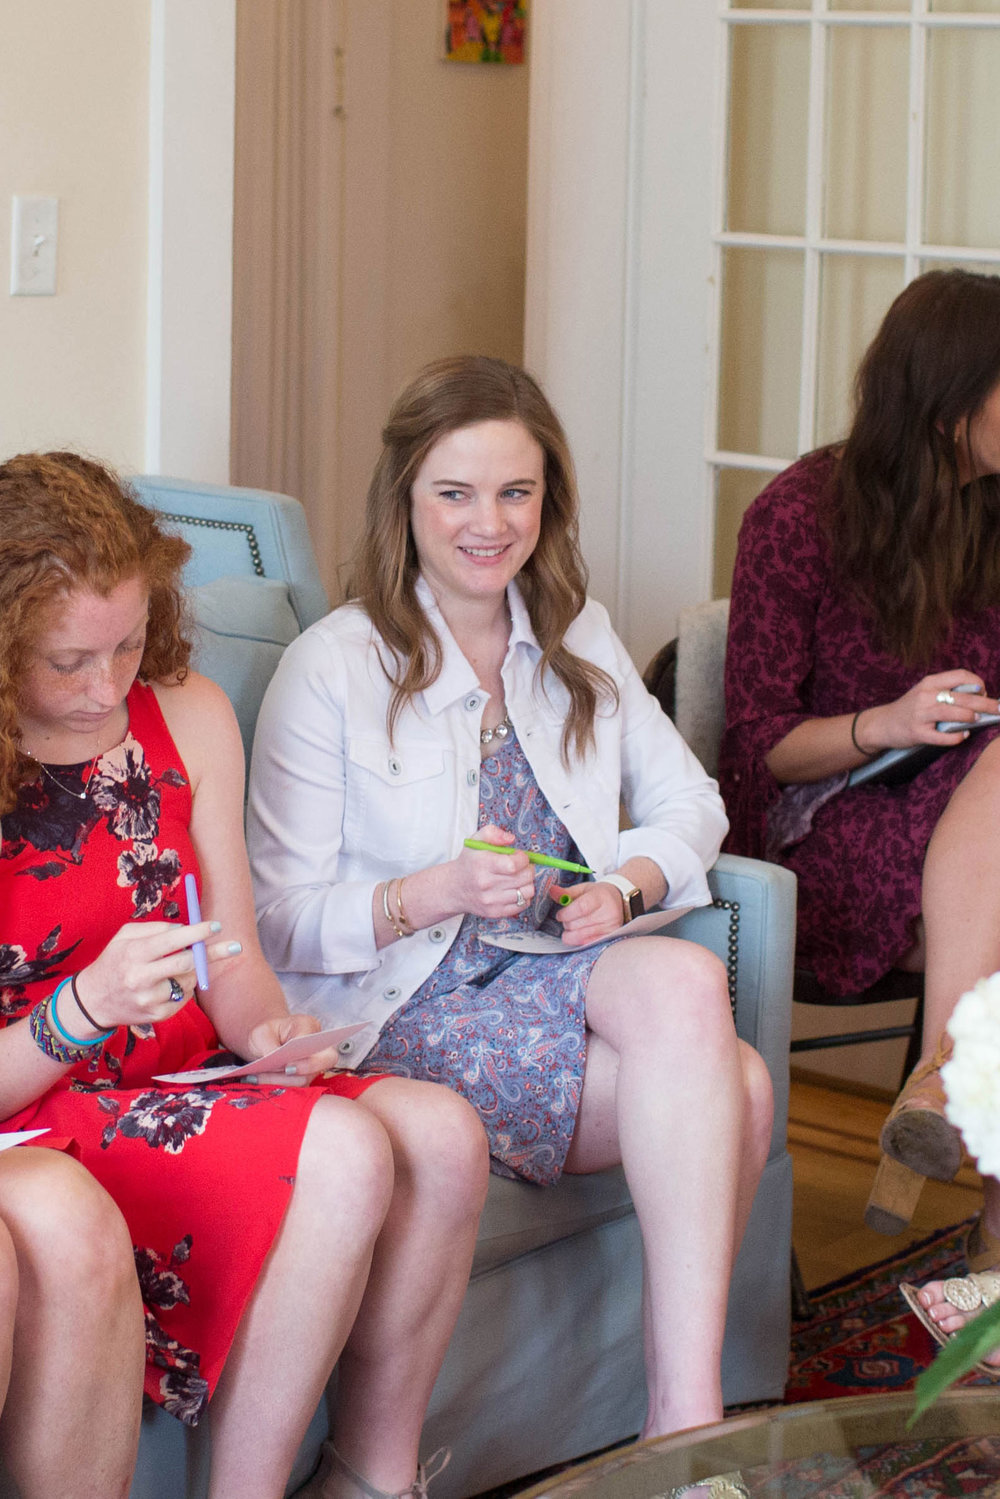 Flower Power: A Spring Bridal Shower | You've Got Flair